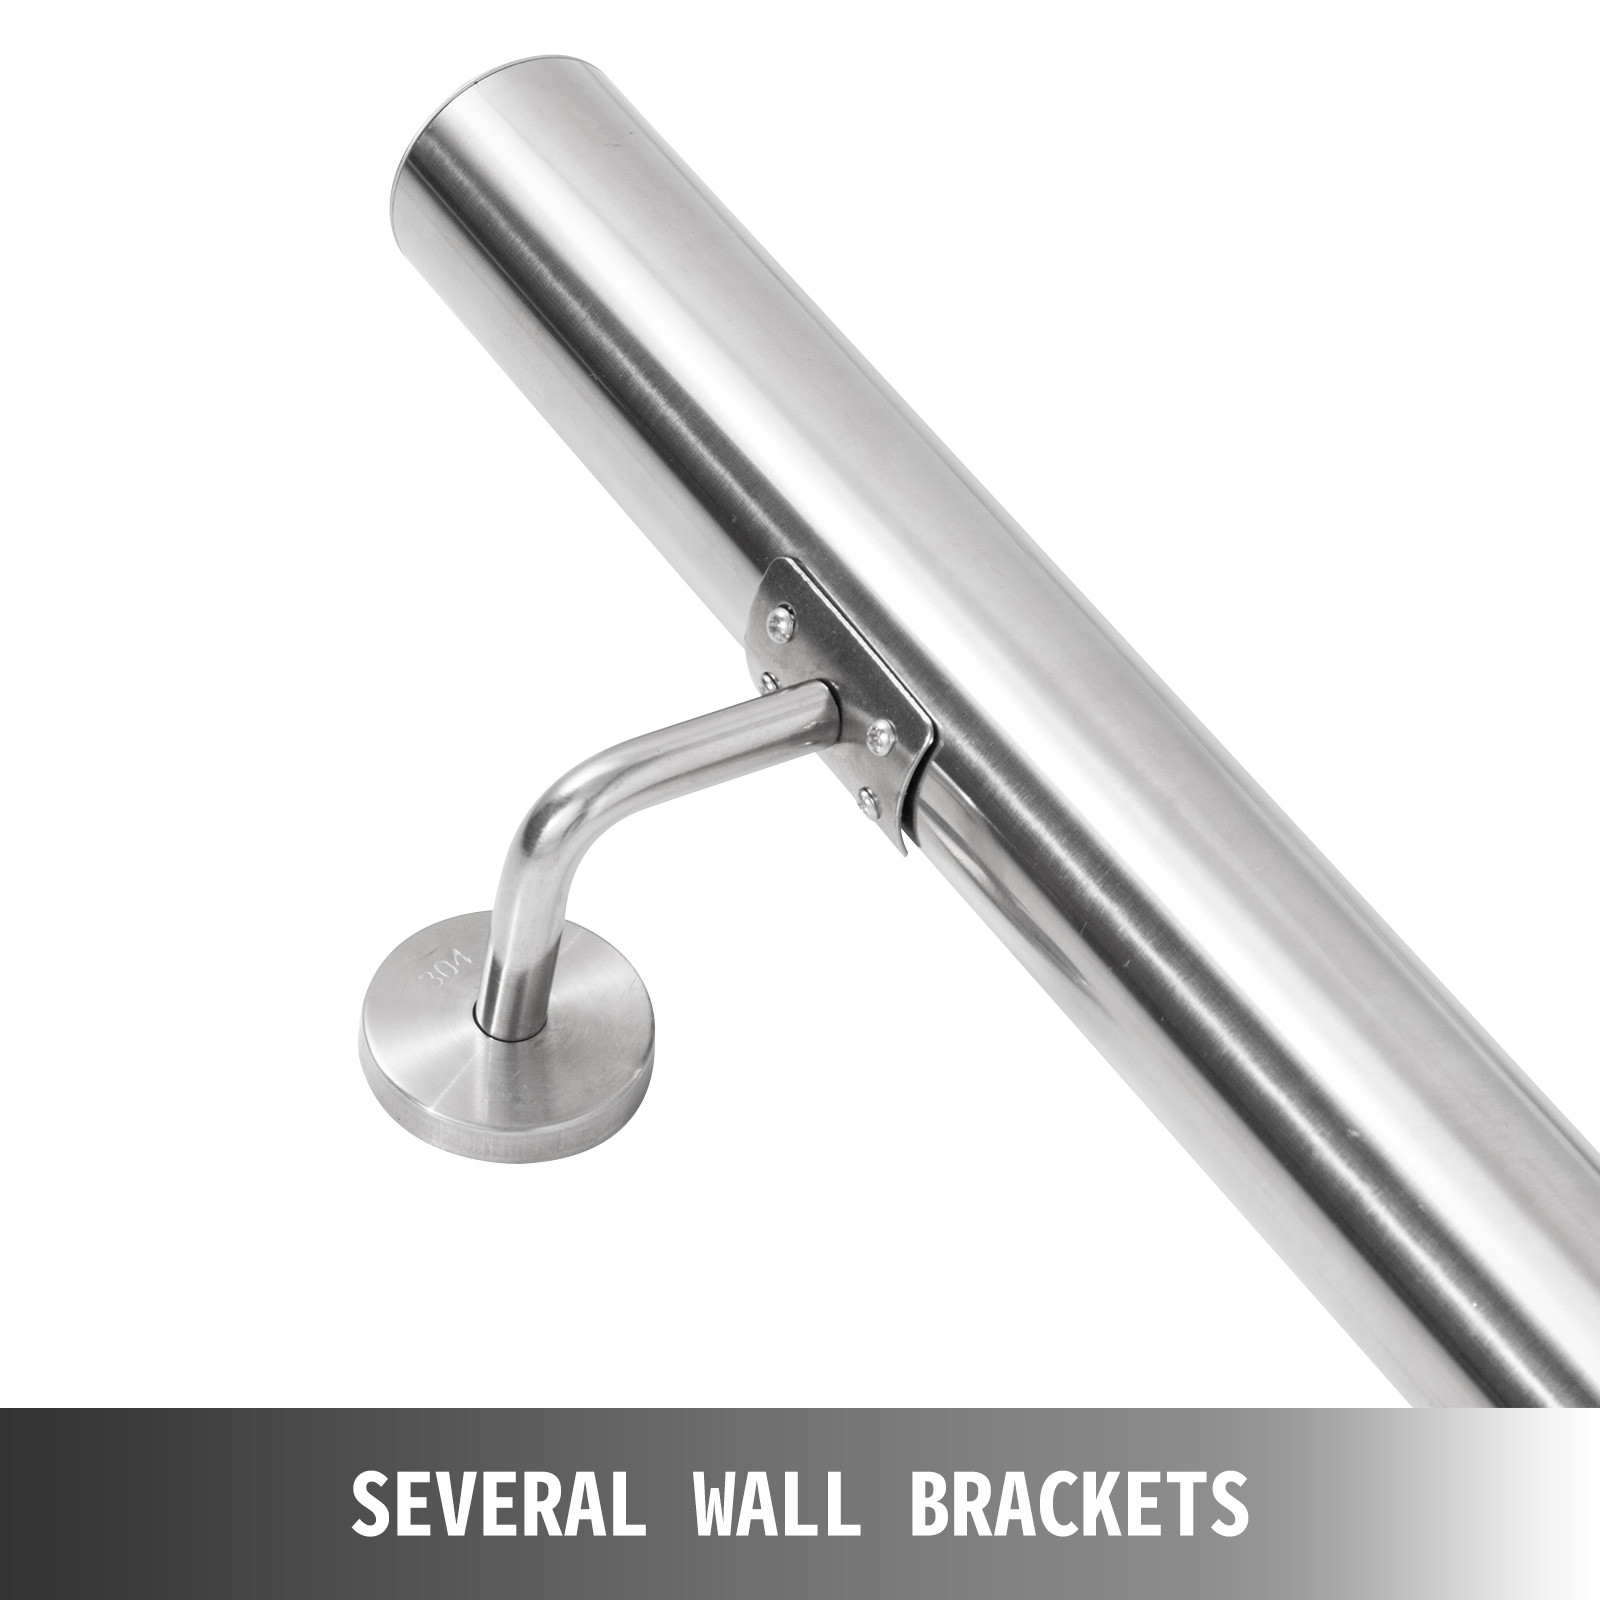 Stair-Handrail-Stair-Rail-3-10ft-Stainless-Steel-Handrail-for-Stairs-200lbs-Load thumbnail 75